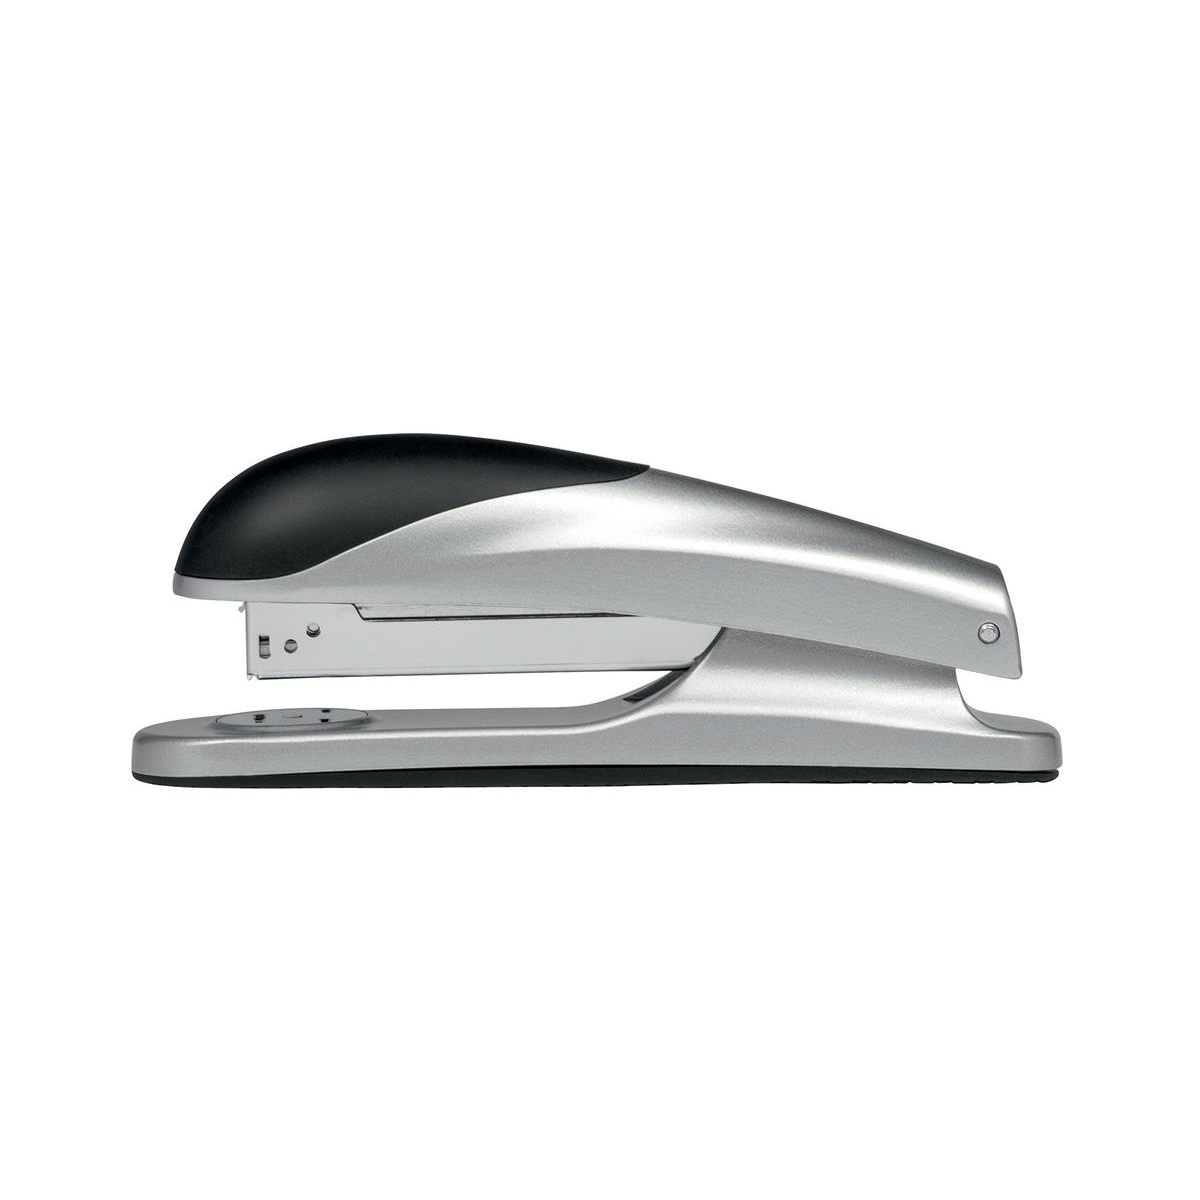 Image for 5 Star Elite Stapler Full Strip Capacity 20 Sheets Silver